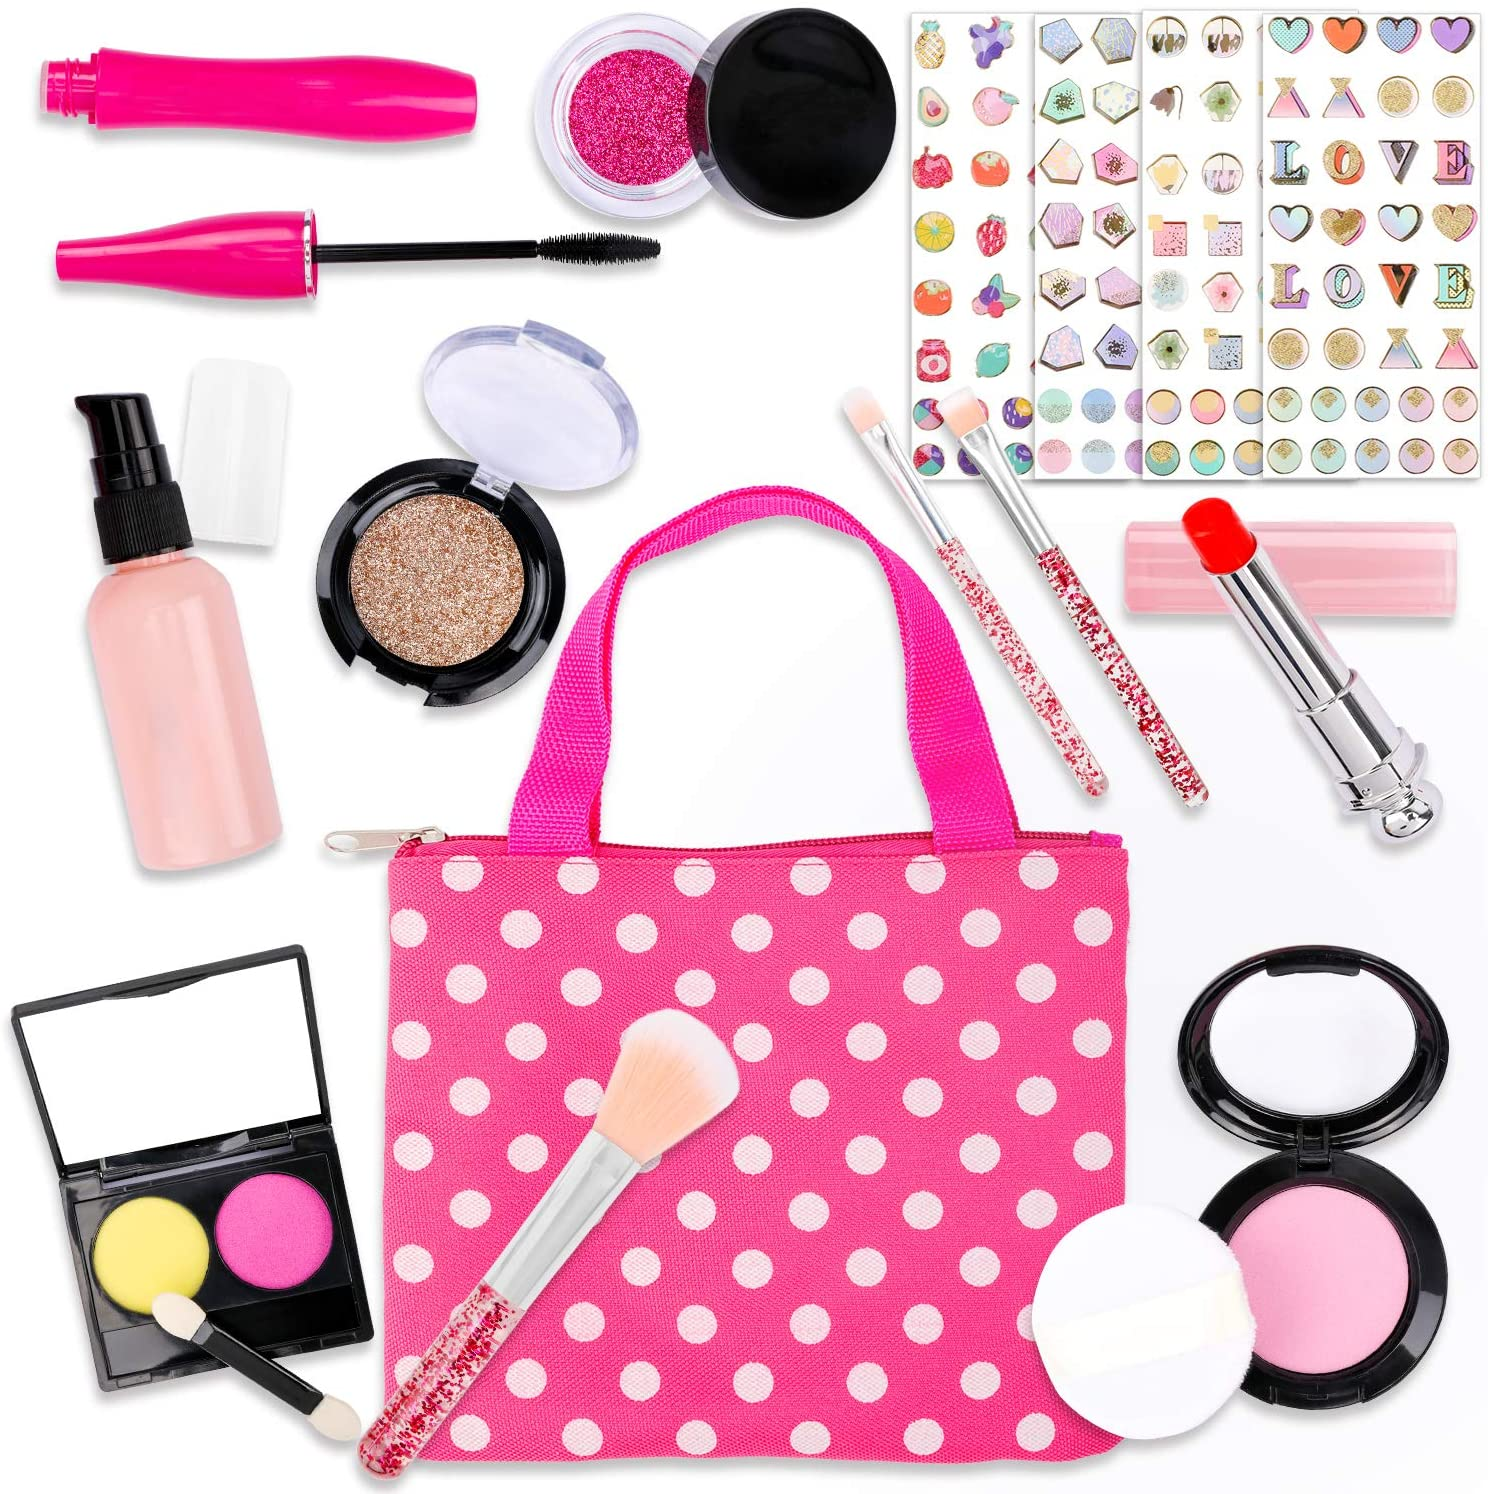 Konsait 17pcs Pretend Play Makeup Kit with Polka Dot Handbag,Pretend Play Makeup Toys for Toddlers Little Girls Kids for Birthday Christmas New Year Valentine Gift (Not Real )